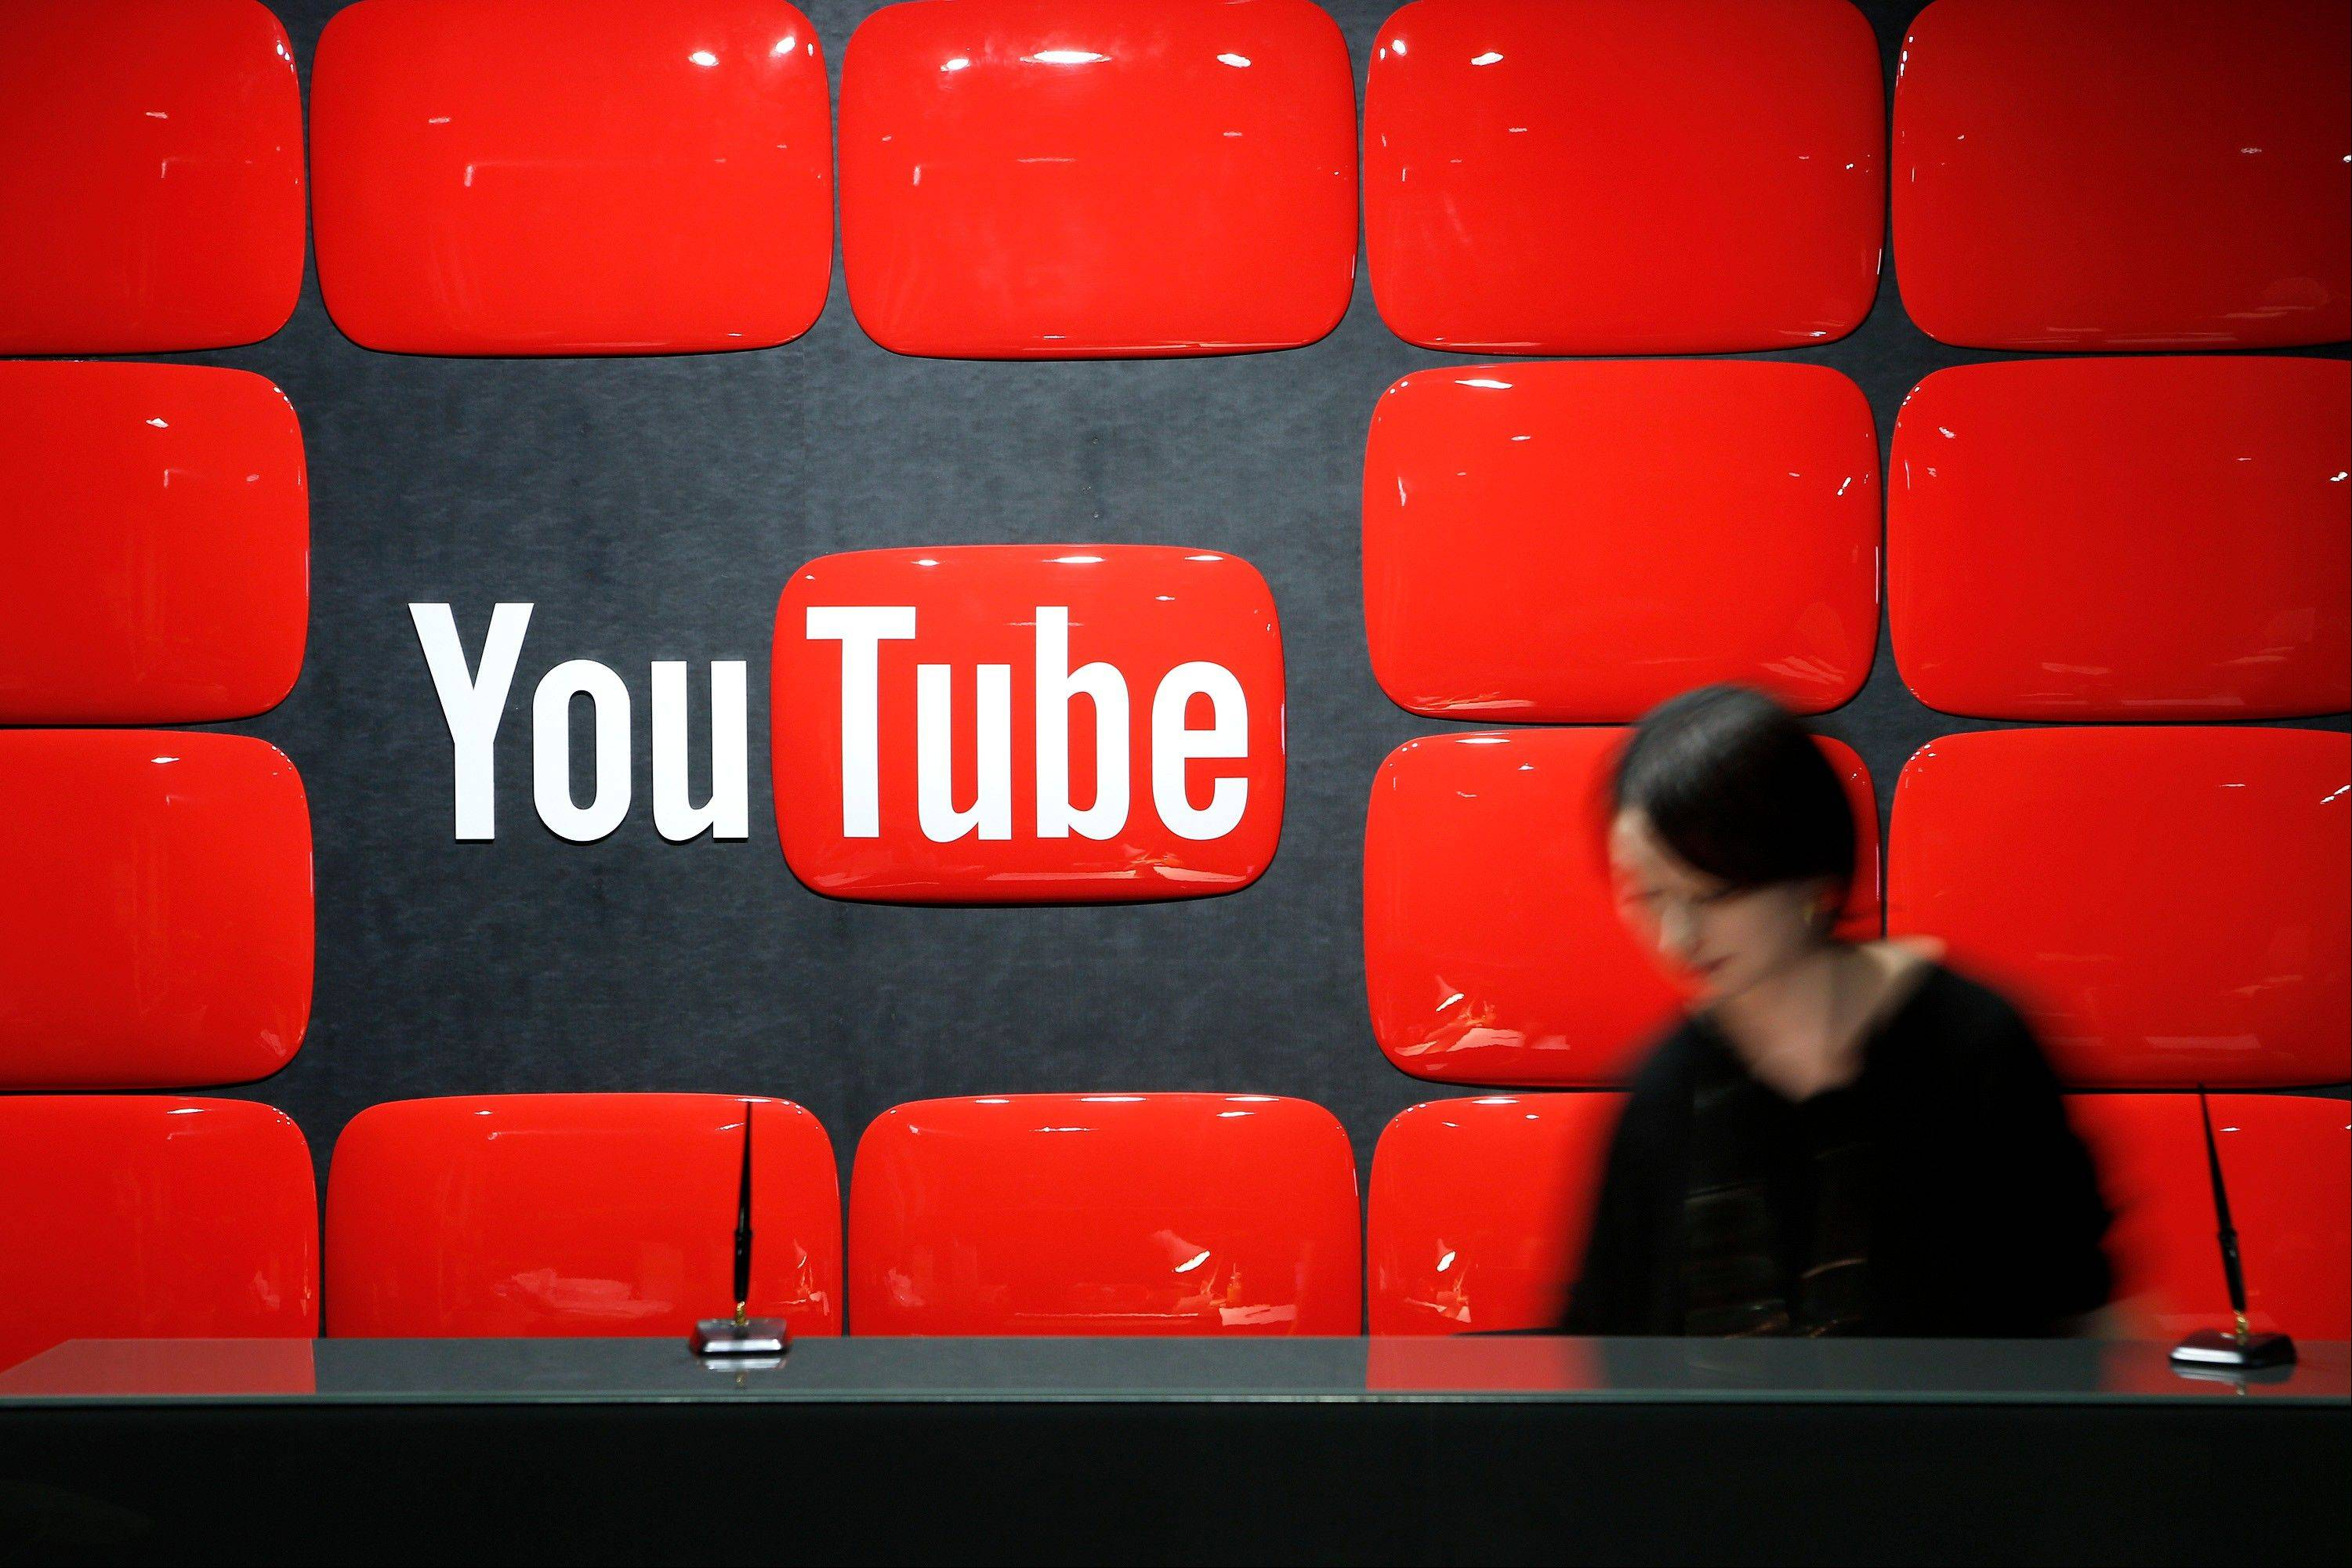 Google Inc.'s YouTube logo is displayed behind the reception desk at the company's YouTube Space studio in Tokyo, Japan, on Saturday, March 30, 2013. In Japan, YouTube's biggest regional success story in Asia, the company is recruiting online stars to bolster its local-language channels with more-targeted original programming and higher production values.